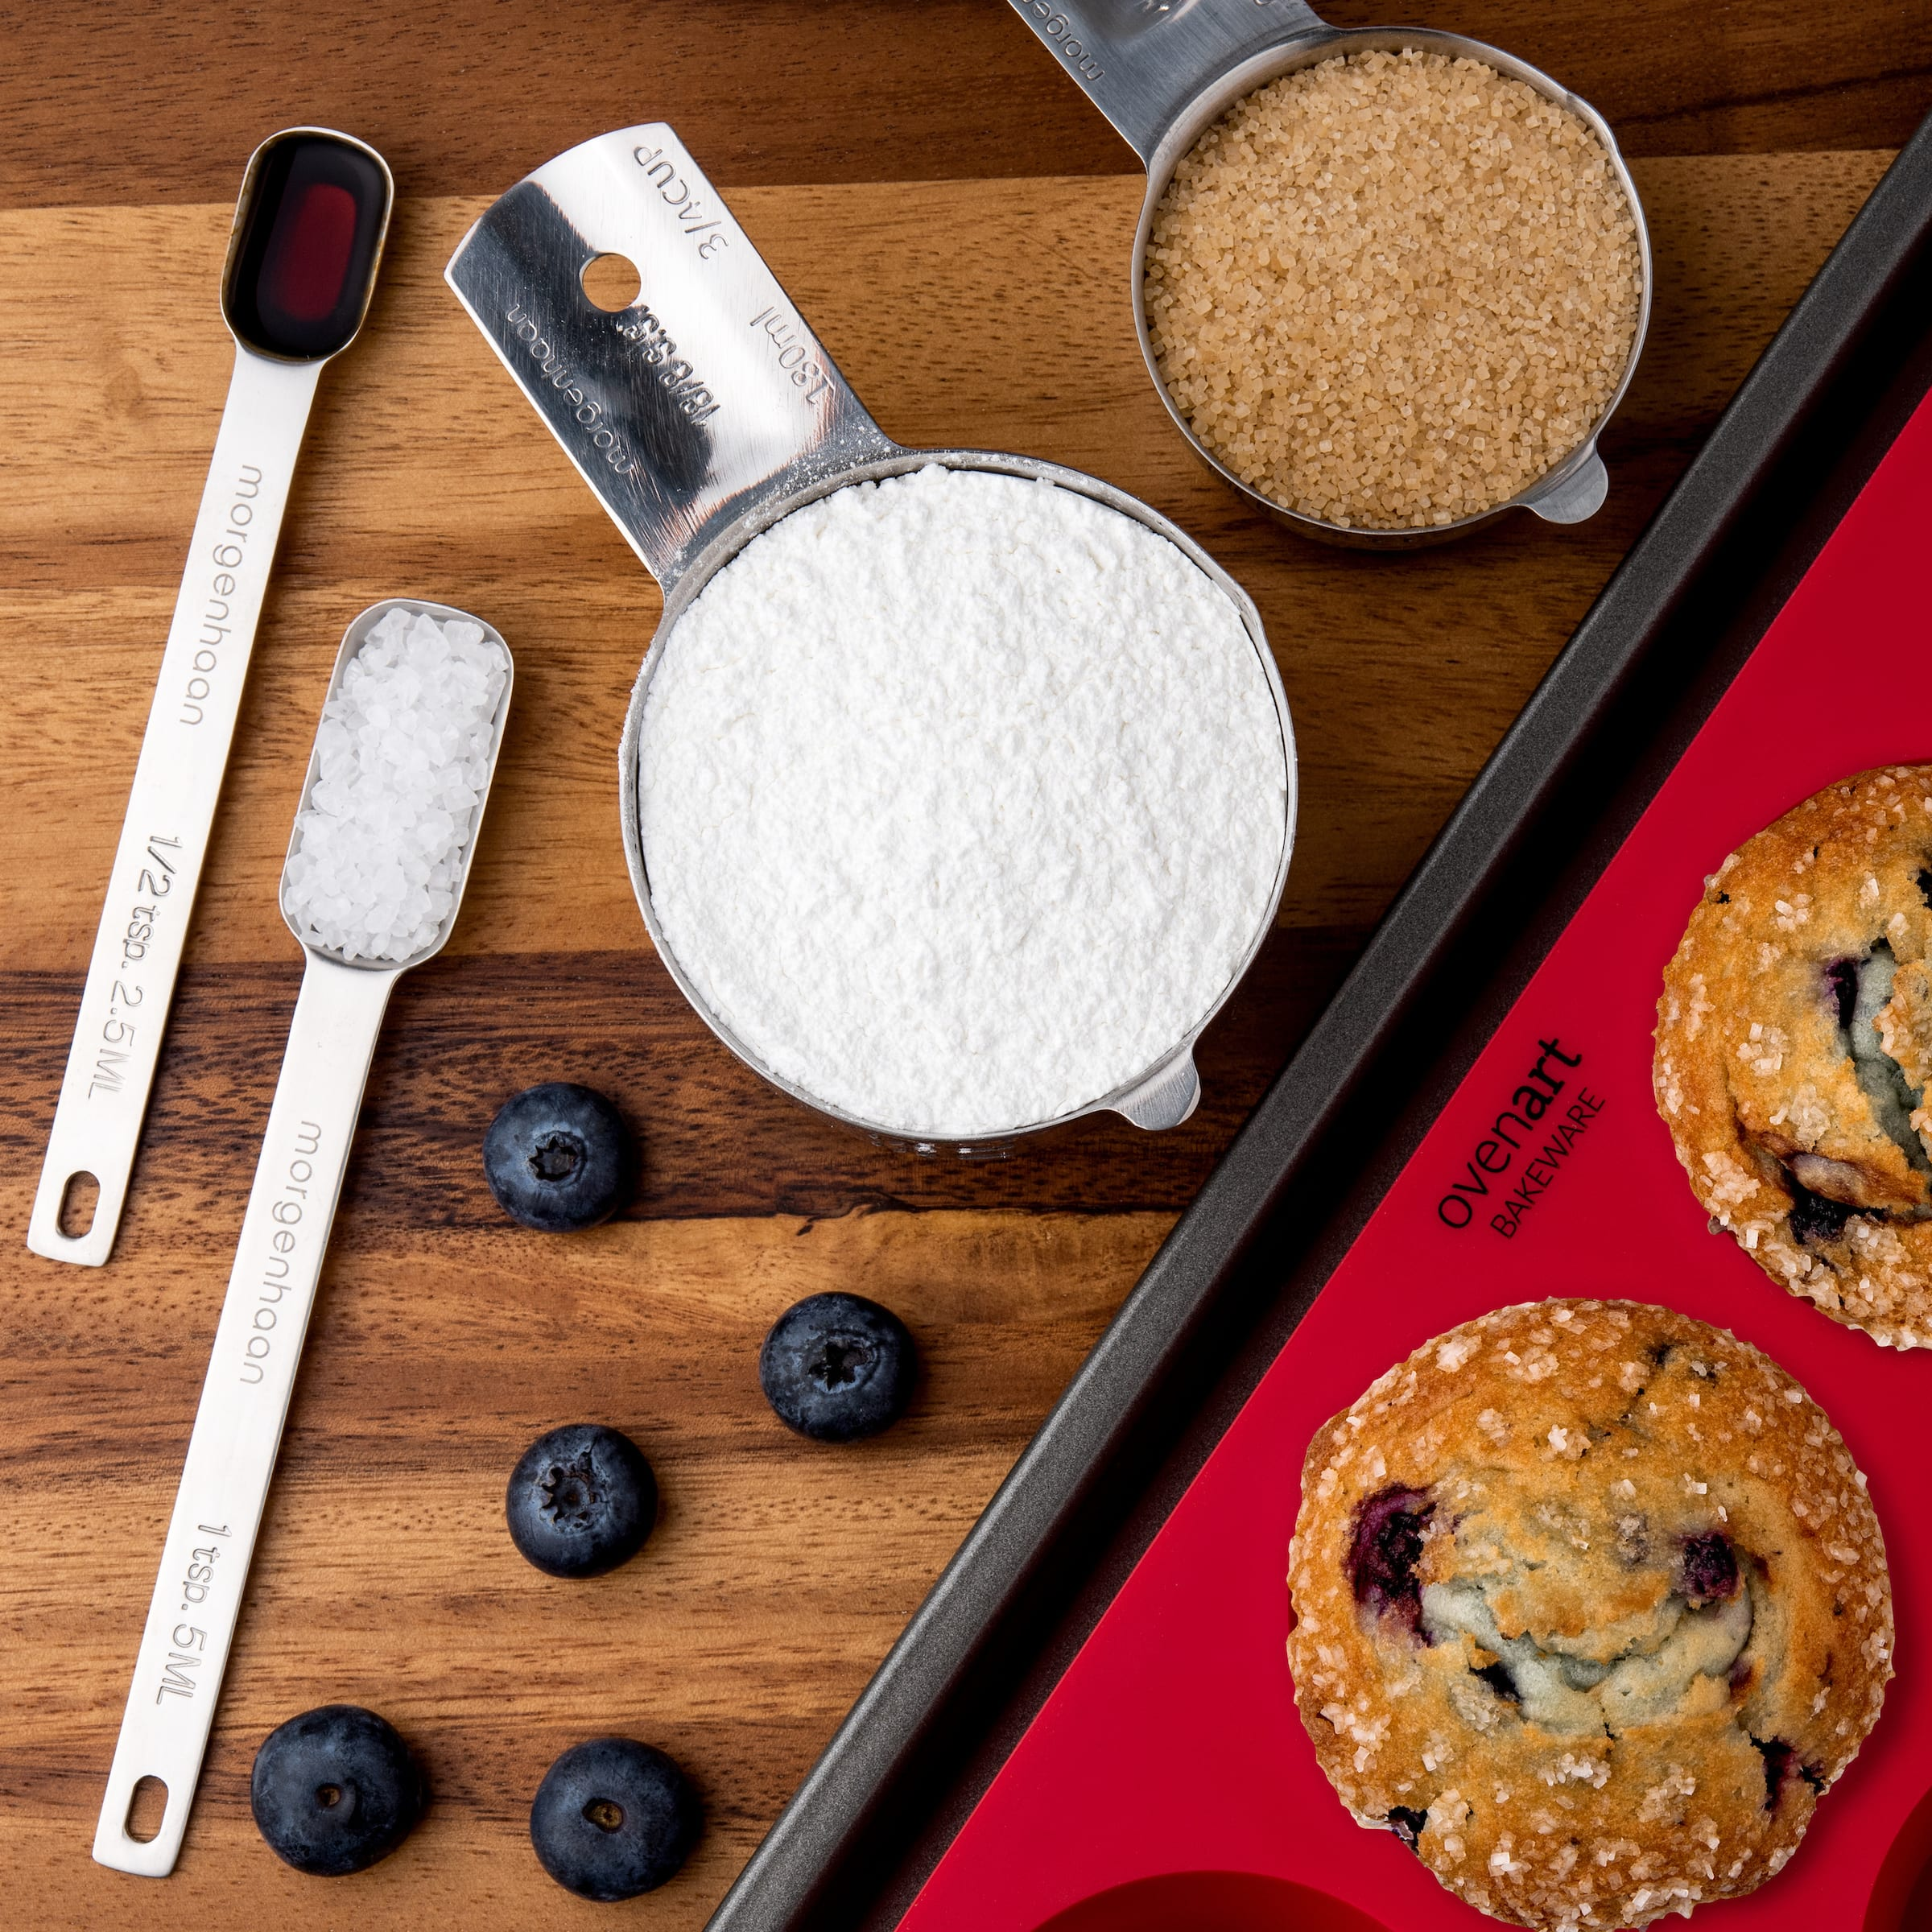 Measuring cups, measuring spoons and muffin tray